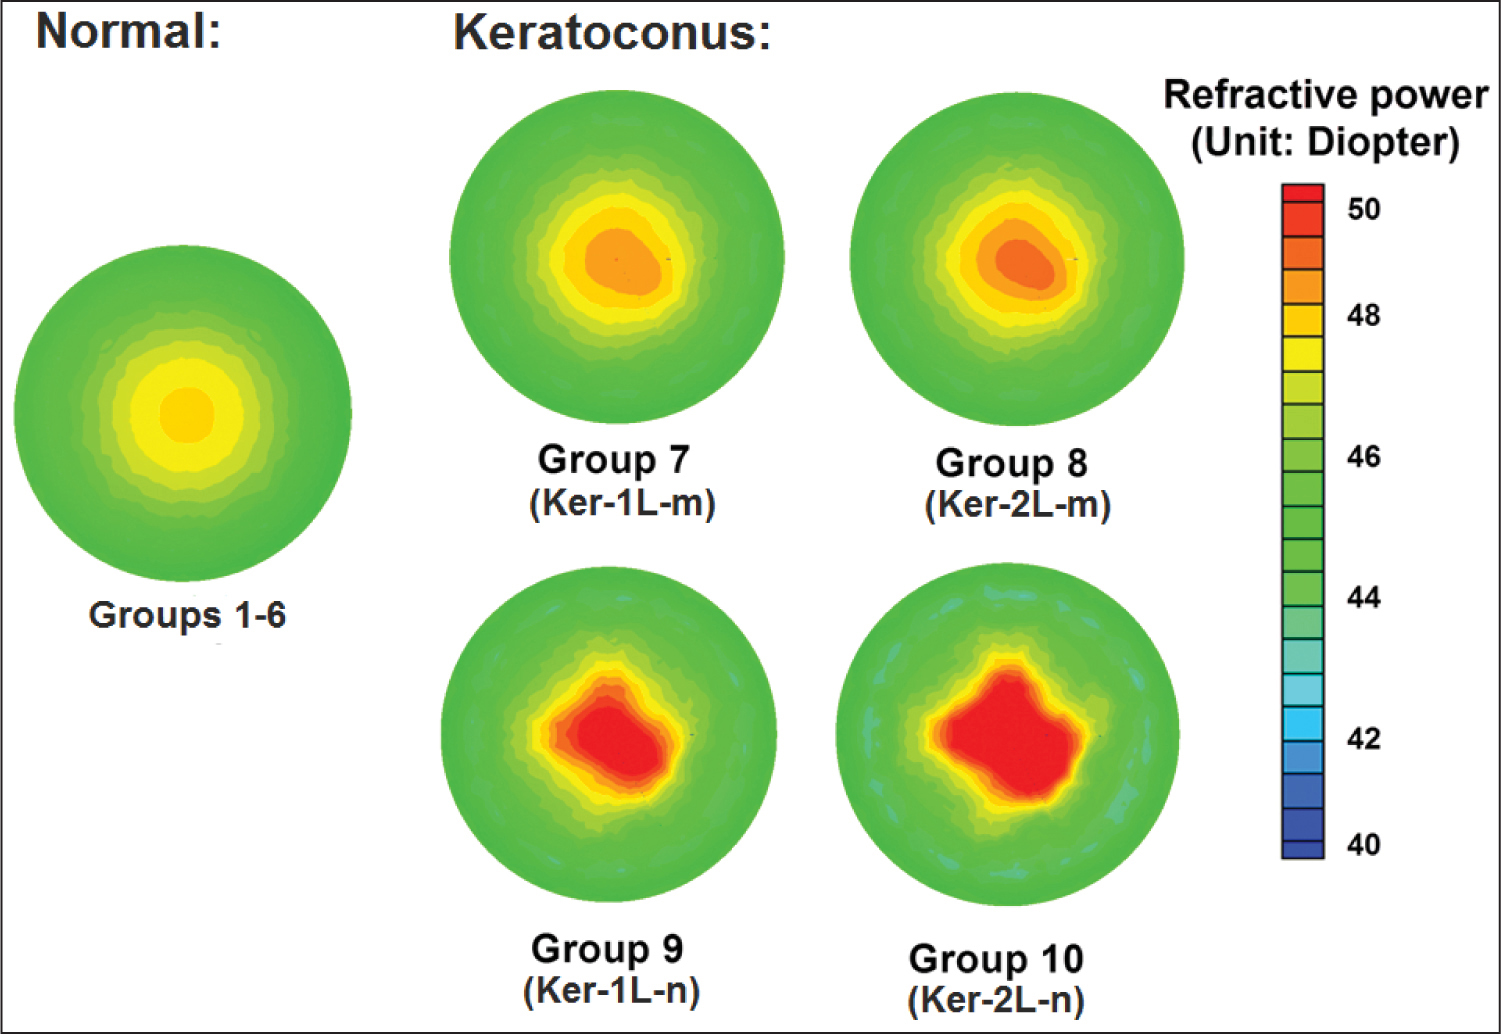 Simulated refractive power maps for normal corneas (groups 1–6) and keratoconic corneas (groups 7–10) when intra-ocular pressure was 16 mm Hg. Central refractive powers for these modes were: groups 1 to 6 (48.05 diopters [D]), group 7 (Ker-1L-m) (49.20 D), group 8 (Ker-2L-m) (49.61 D), group 9 (Ker-1L-n) (52.02 D), and group 10 (Ker-2L-n) (55.01 D).